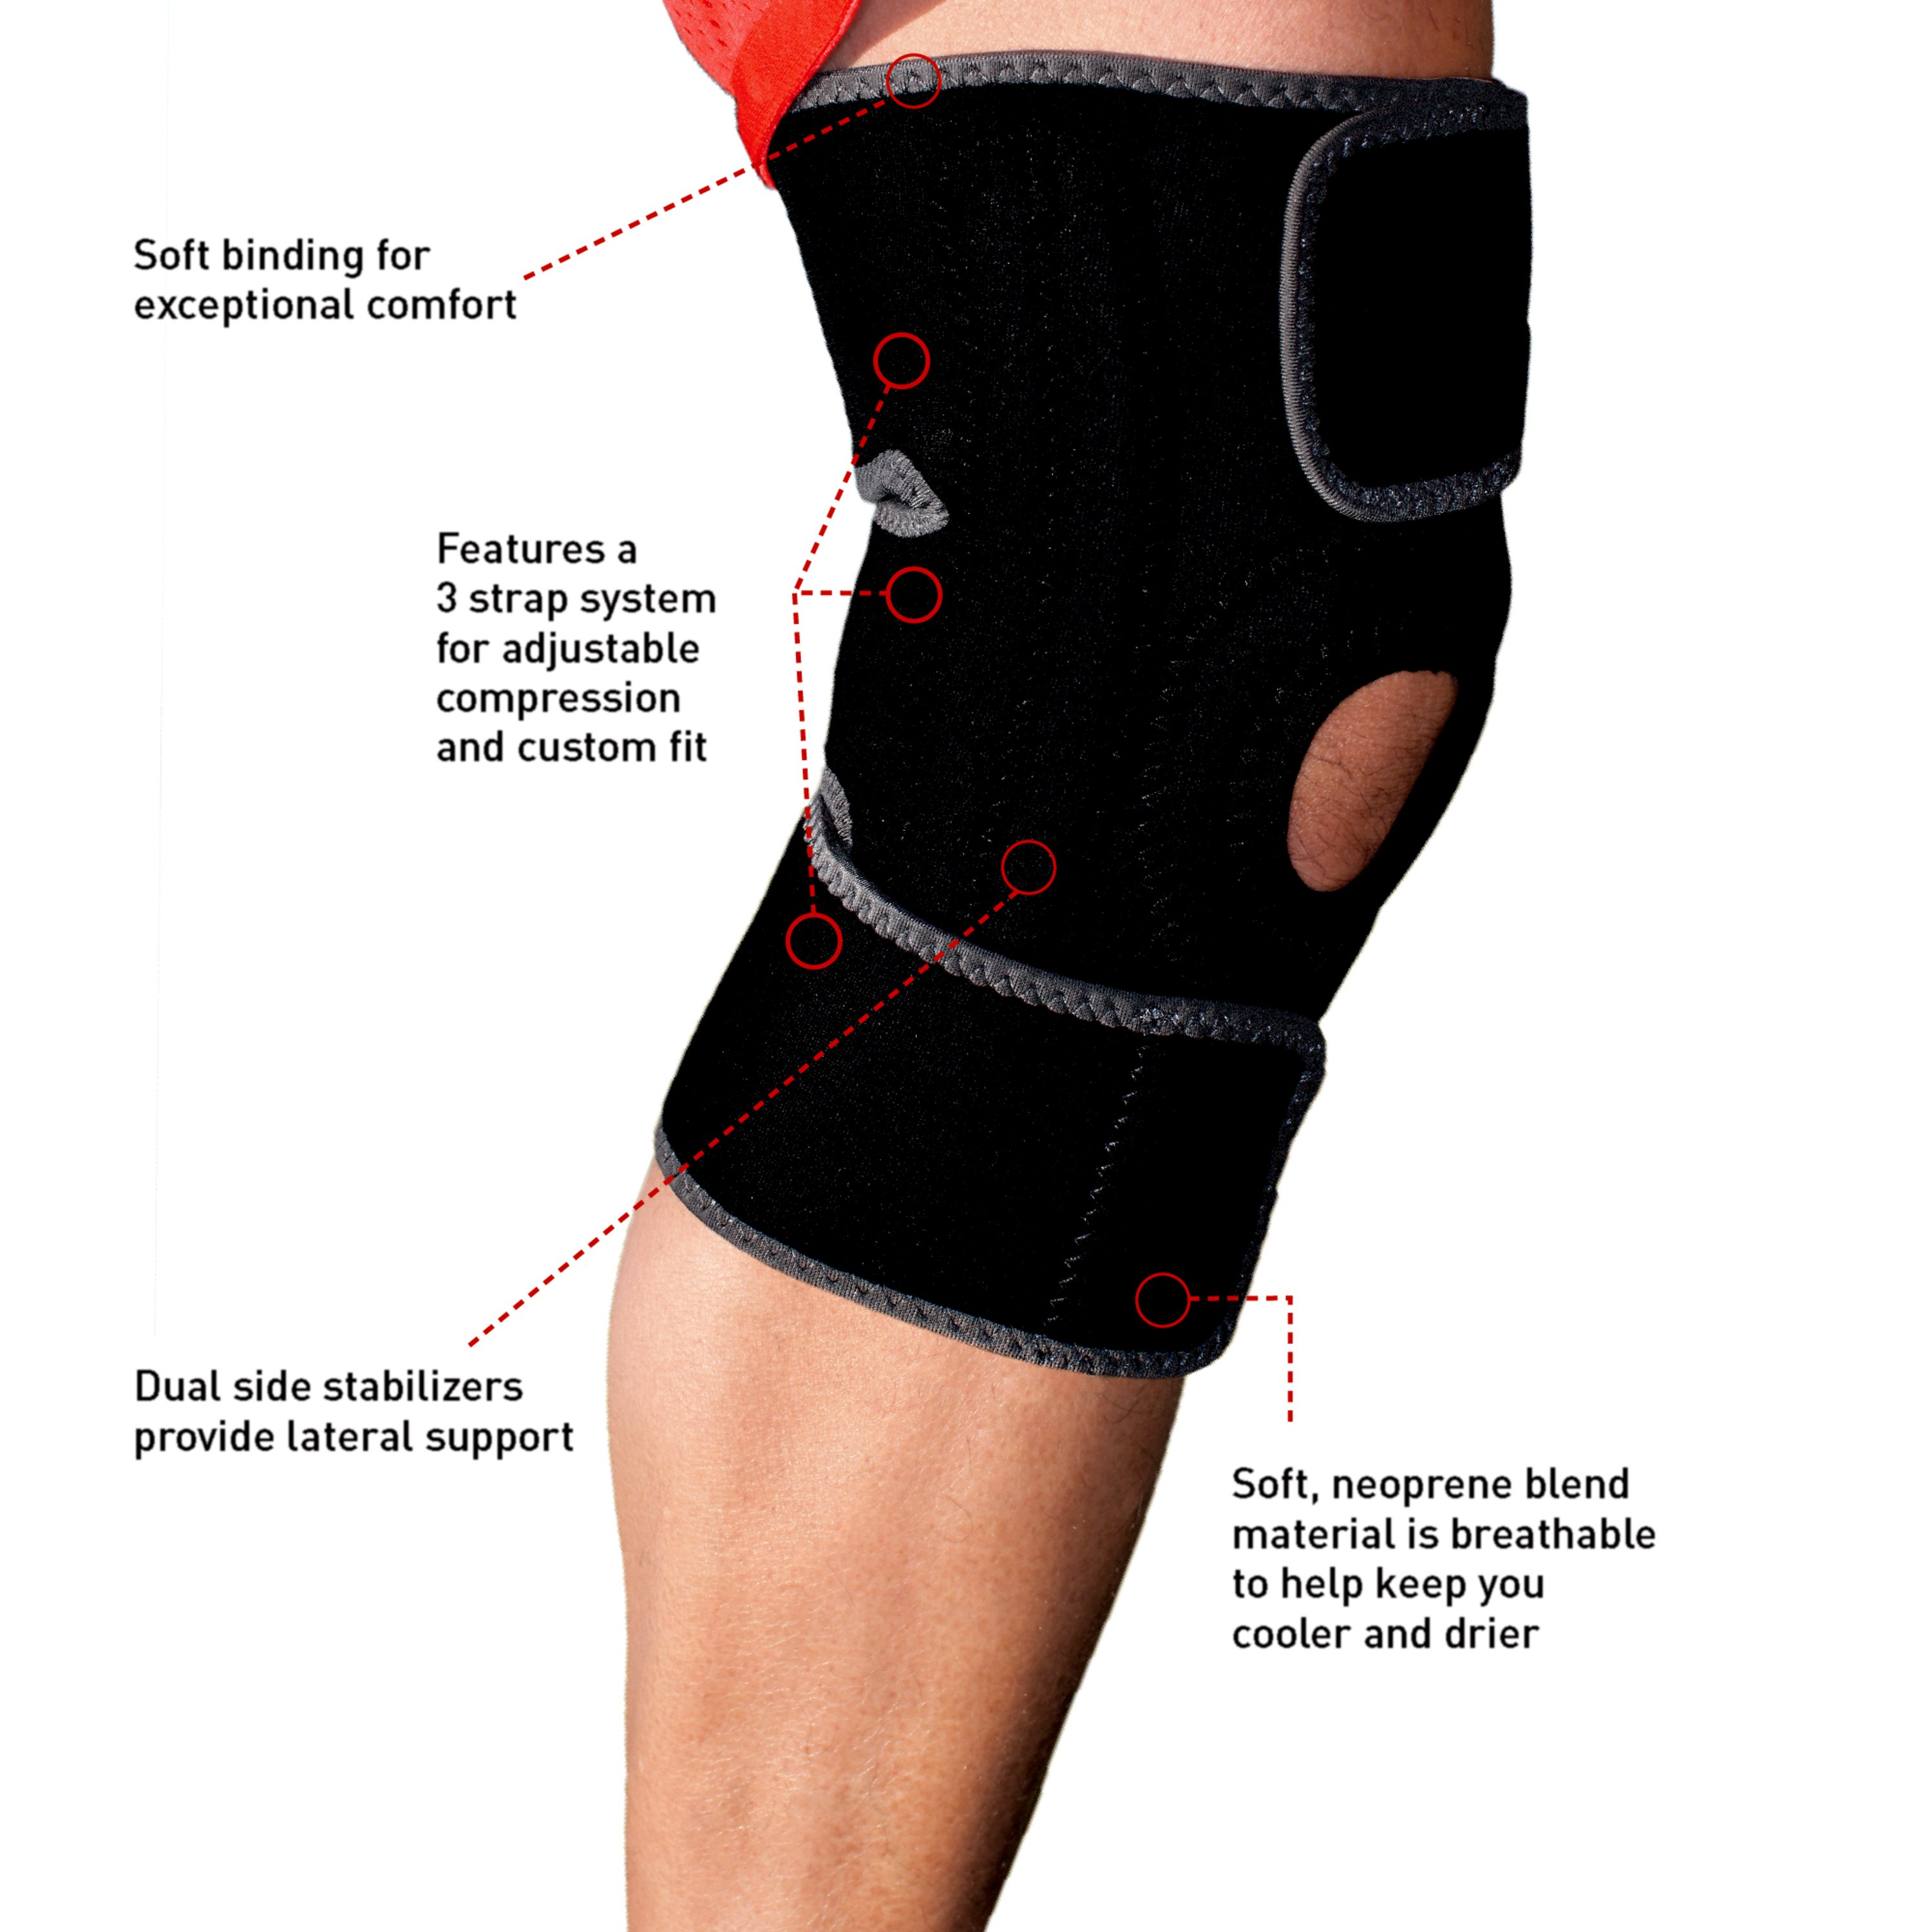 df8db2bf26 ACE Knee Brace with Dual Side Stabilizers, Adjustable, Black/Gray -  Walmart.com